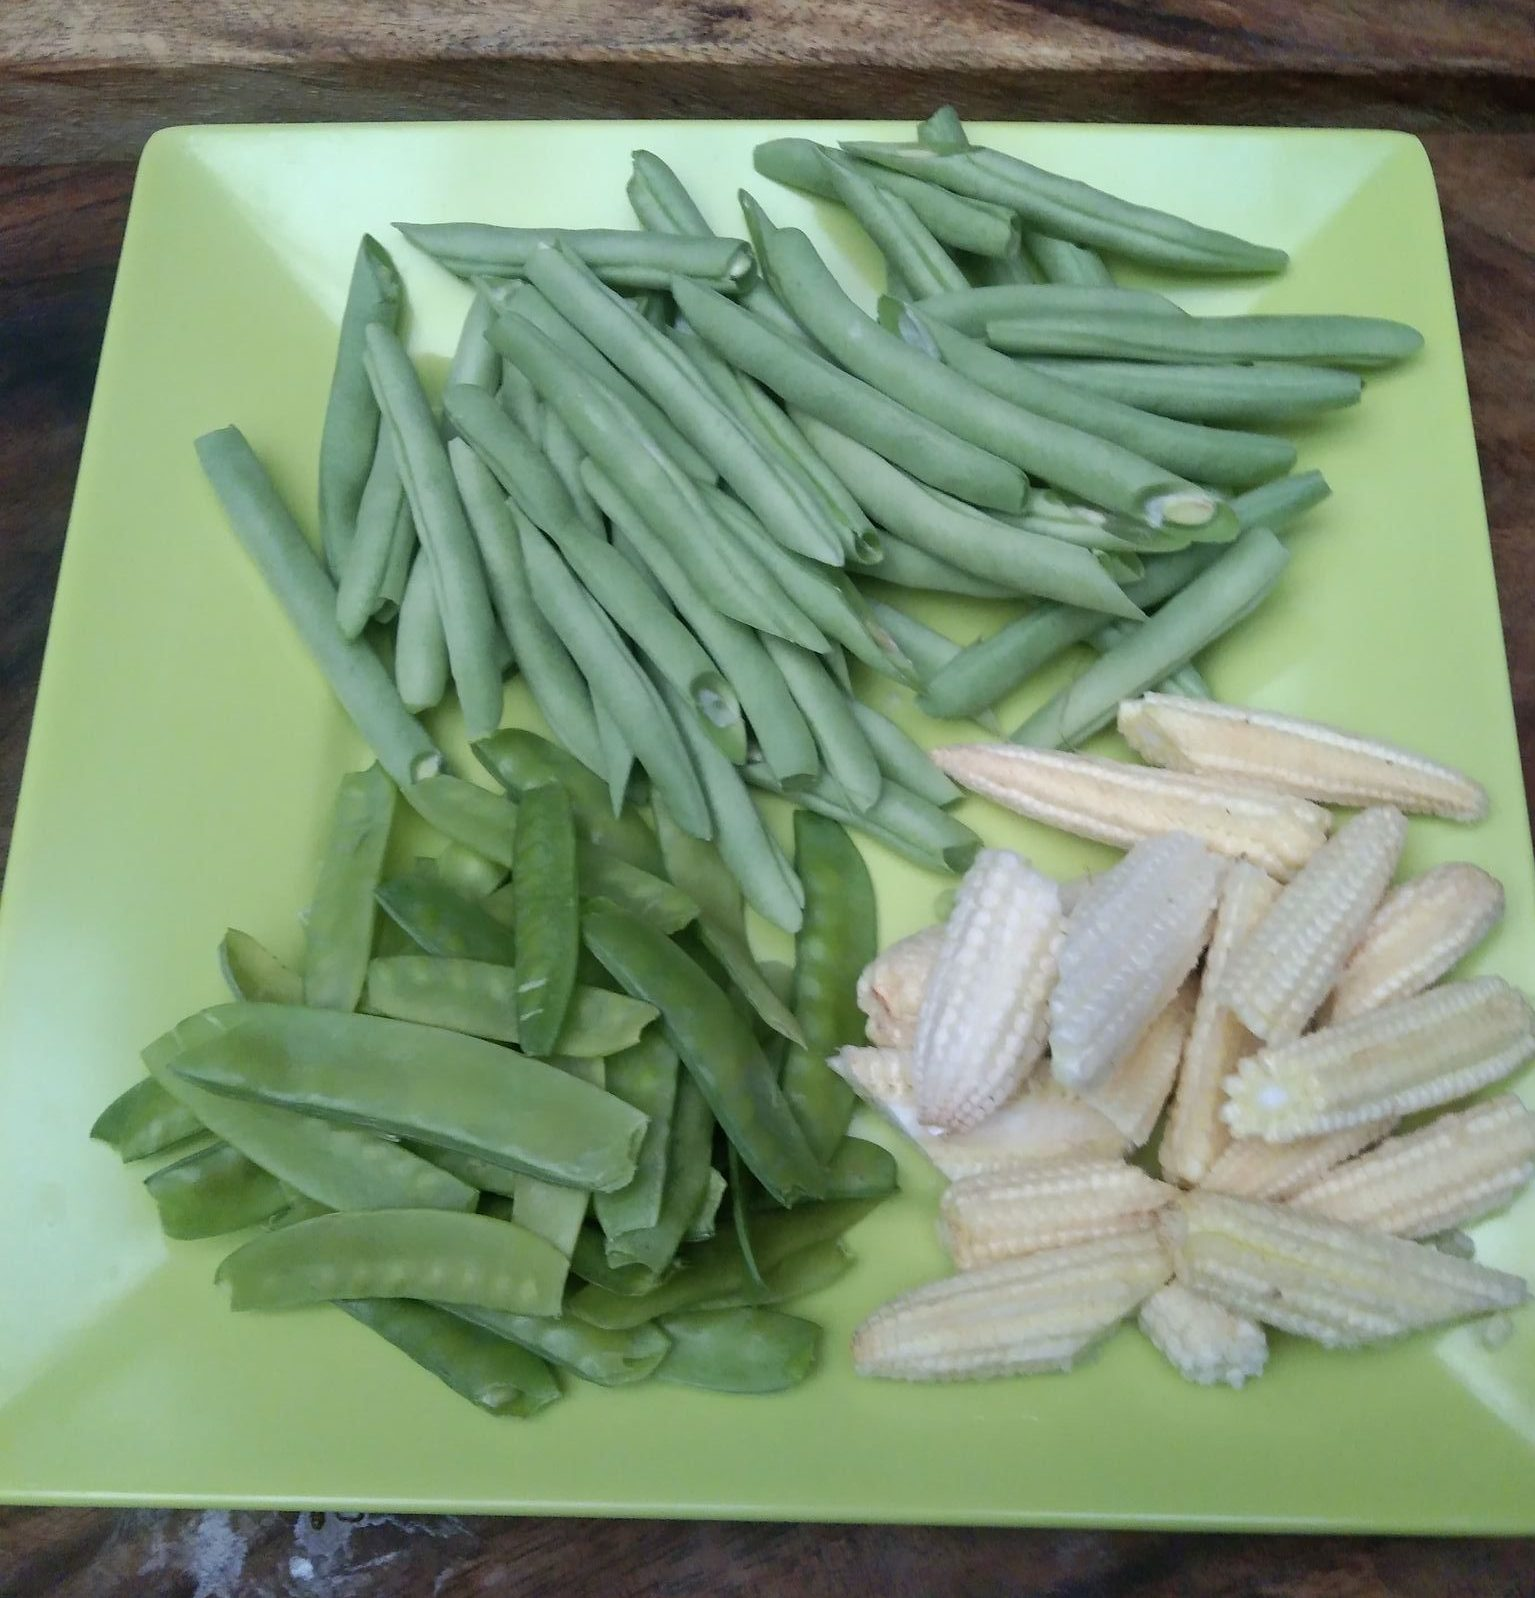 Pieces of baby corn, snow peas, and string beans on a green plate.